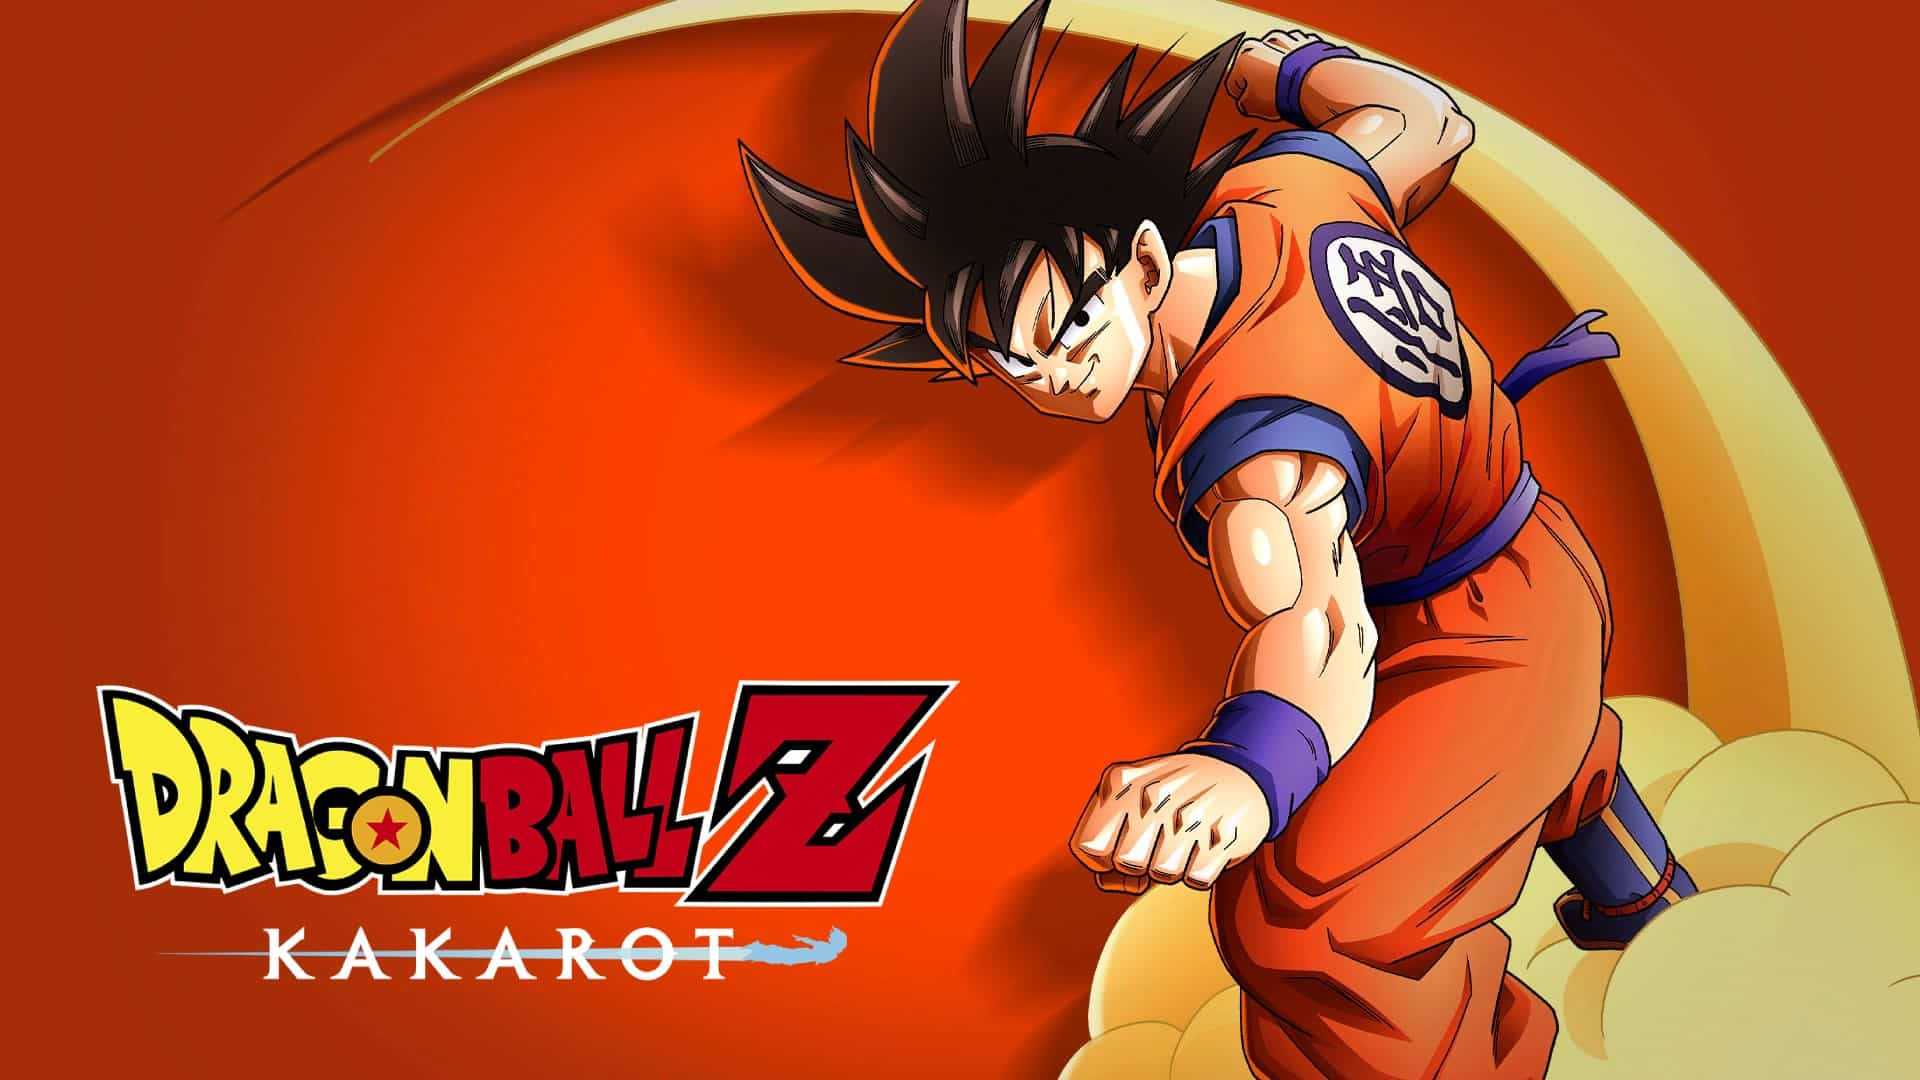 Dragon Ball Z Kakarot PC Free Download